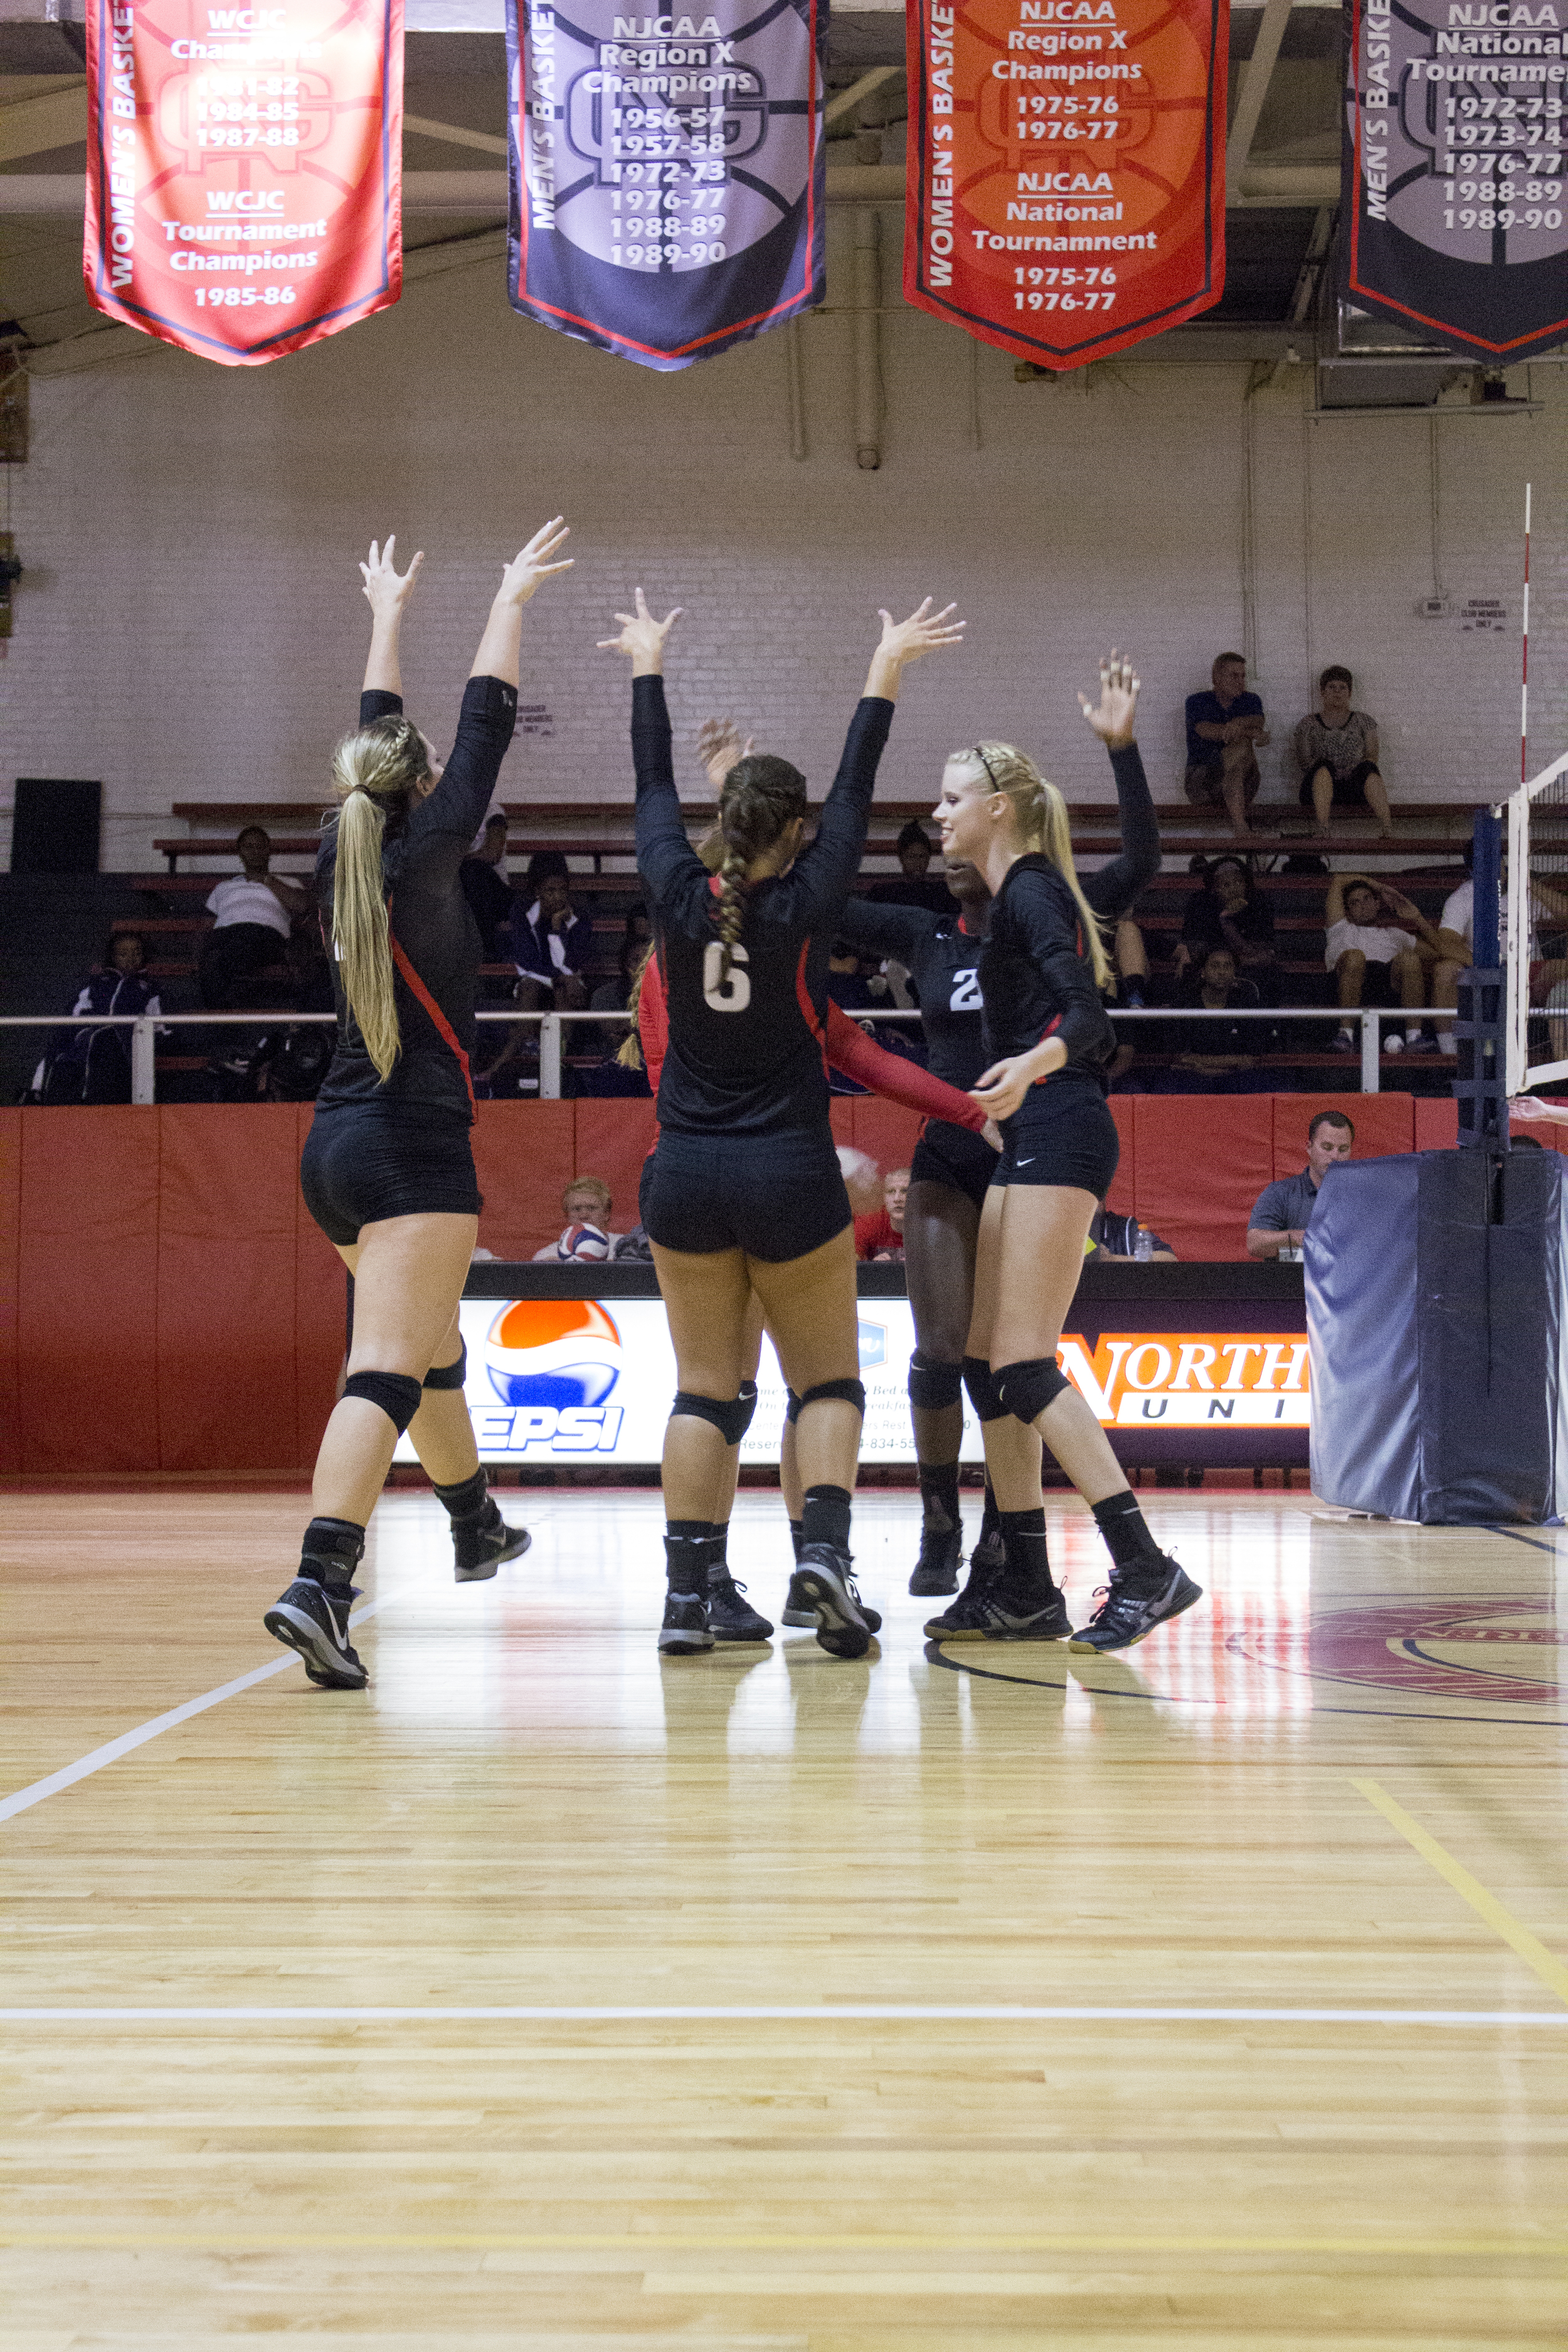 The team celebrates a victory over a hard fought point.